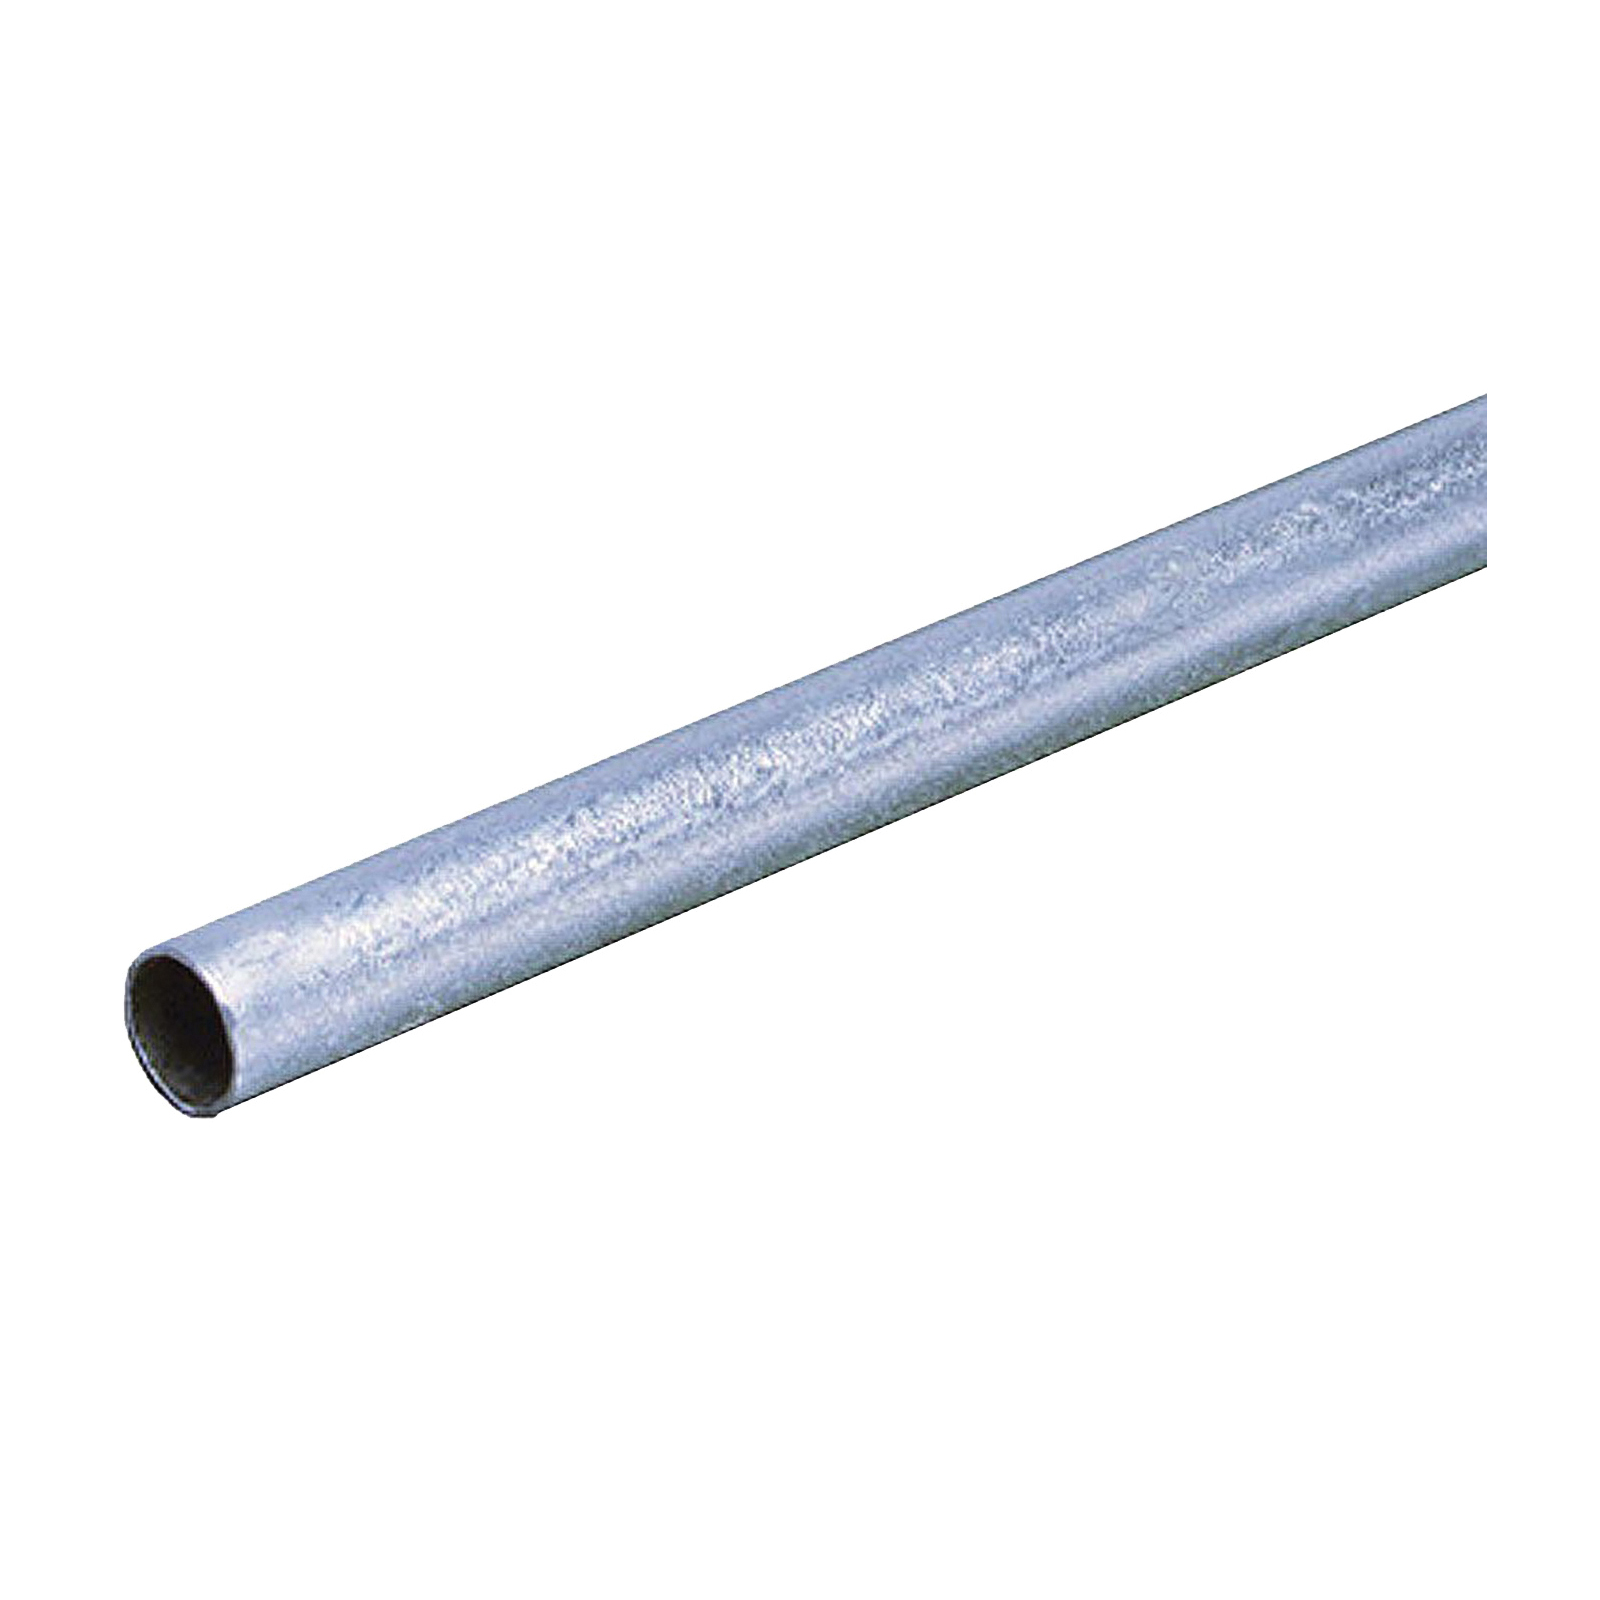 Picture of Allied Tube & Conduit 101550 EMT Conduit, 59/64 in OD, 10 ft L, Galvanized Steel, Galvanized